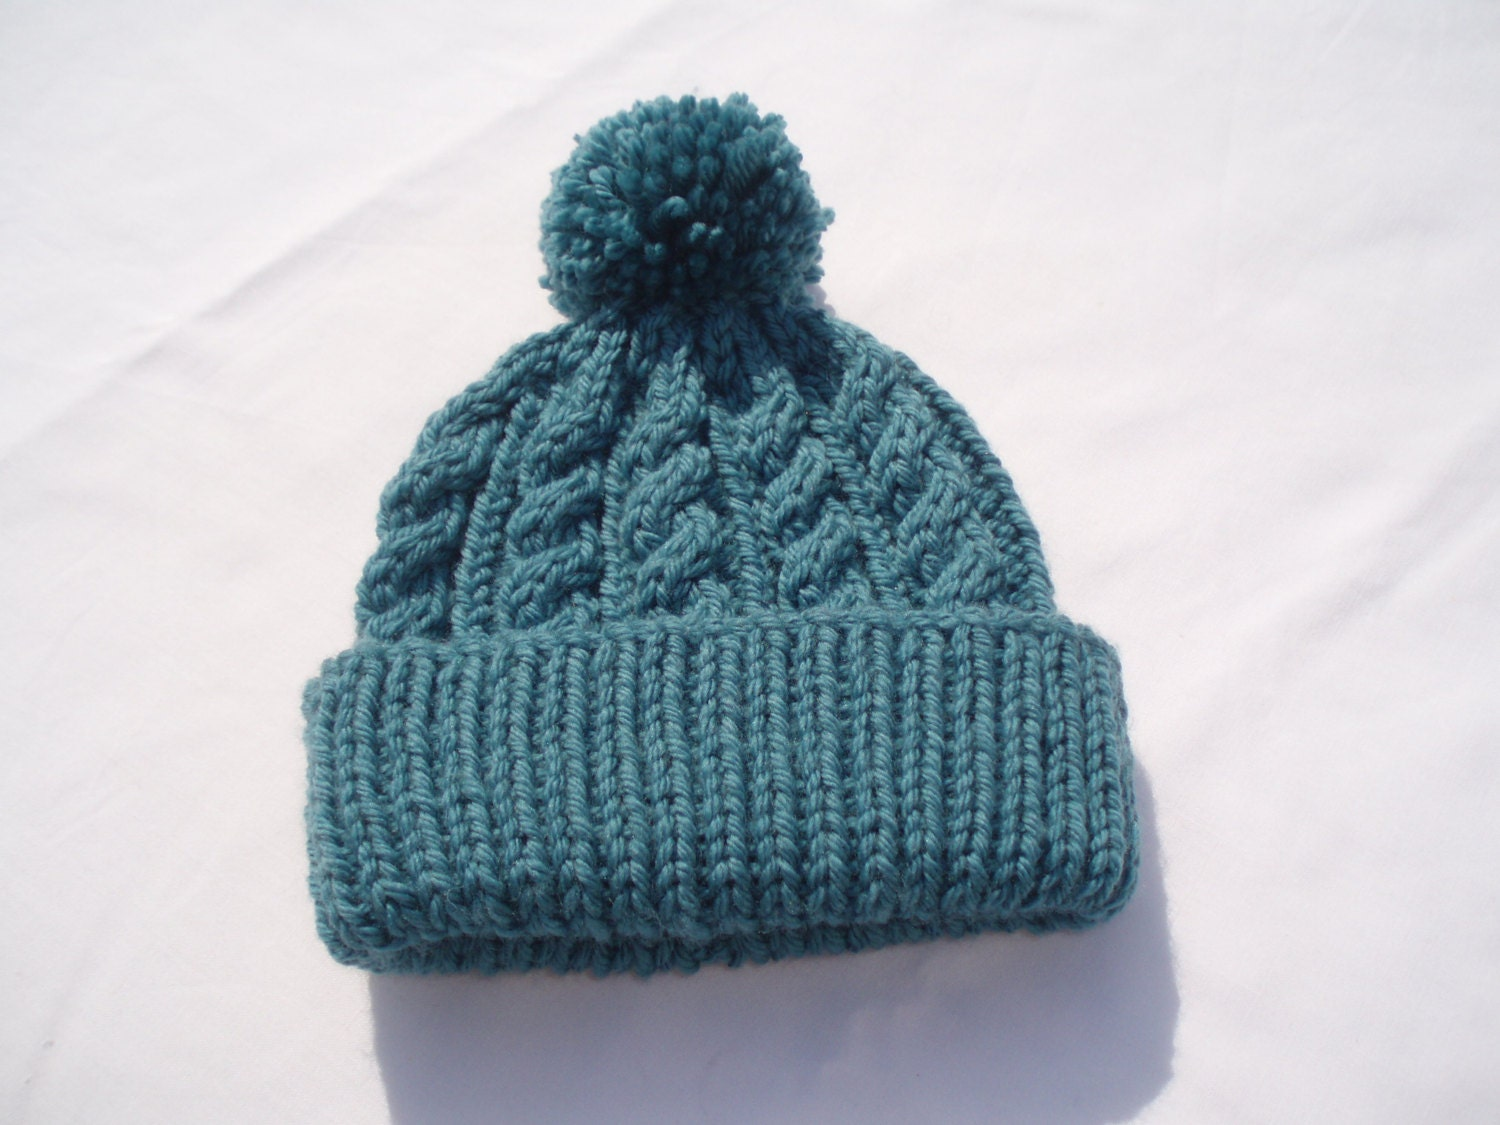 Teal hand knitted aran beanie bobble hat Unisex adult sizes